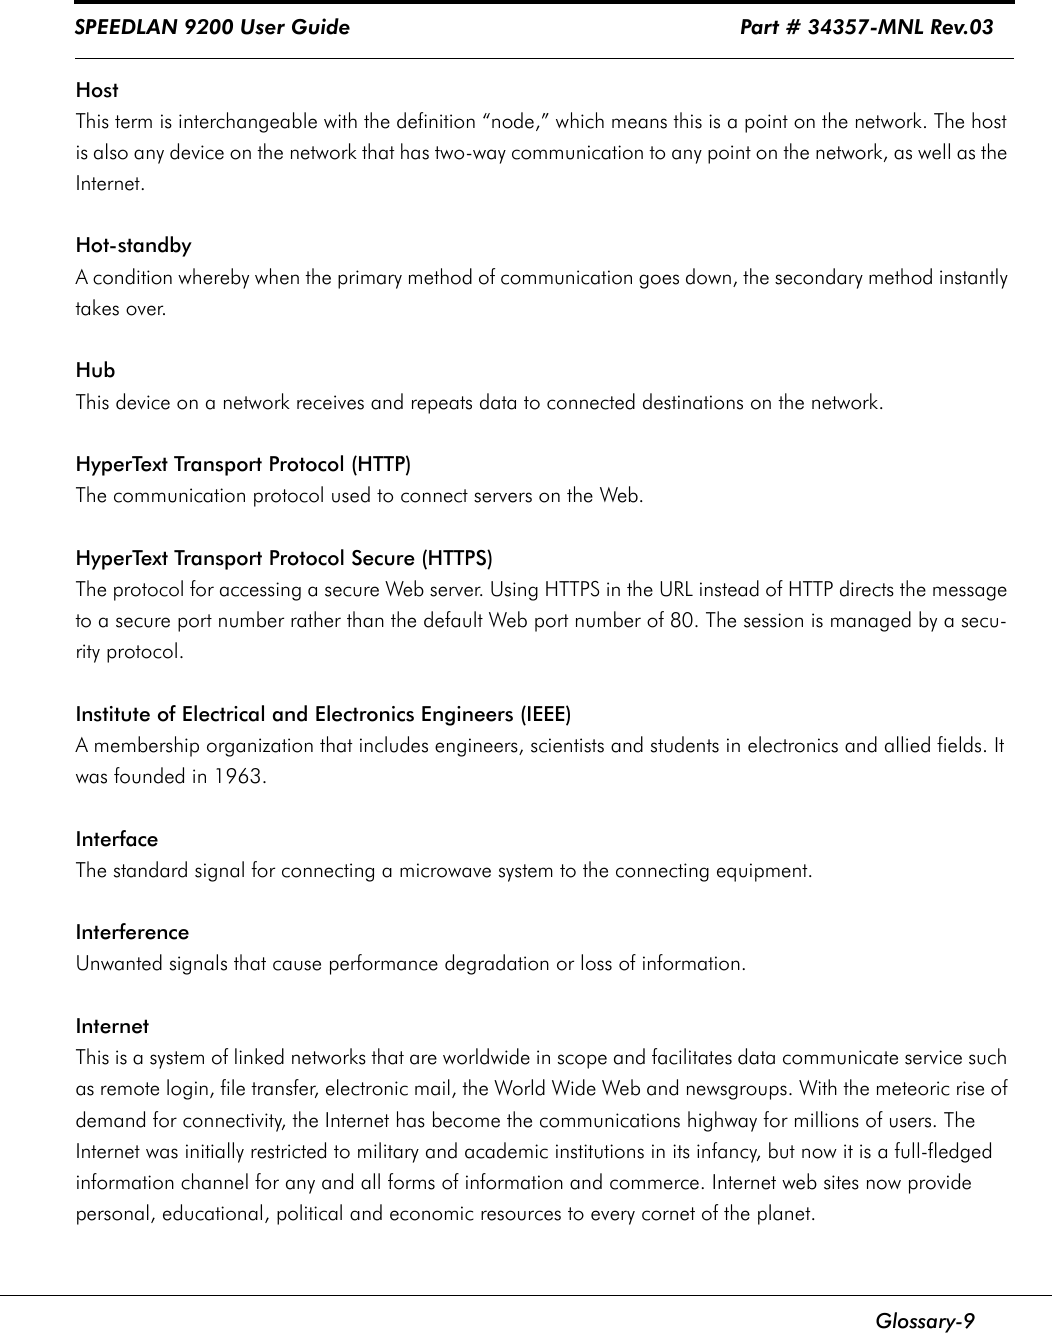 """SPEEDLAN 9200 User Guide                                                               Part # 34357-MNL Rev.03      Glossary-9HostThis term is interchangeable with the definition """"node,"""" which means this is a point on the network. The host is also any device on the network that has two-way communication to any point on the network, as well as the Internet. Hot-standbyA condition whereby when the primary method of communication goes down, the secondary method instantly takes over.HubThis device on a network receives and repeats data to connected destinations on the network. HyperText Transport Protocol (HTTP)The communication protocol used to connect servers on the Web.HyperText Transport Protocol Secure (HTTPS)The protocol for accessing a secure Web server. Using HTTPS in the URL instead of HTTP directs the message to a secure port number rather than the default Web port number of 80. The session is managed by a secu-rity protocol.Institute of Electrical and Electronics Engineers (IEEE)A membership organization that includes engineers, scientists and students in electronics and allied fields. It was founded in 1963.InterfaceThe standard signal for connecting a microwave system to the connecting equipment.InterferenceUnwanted signals that cause performance degradation or loss of information.InternetThis is a system of linked networks that are worldwide in scope and facilitates data communicate service such as remote login, file transfer, electronic mail, the World Wide Web and newsgroups. With the meteoric rise of demand for connectivity, the Internet has become the communications highway for millions of users. The Internet was initially restricted to military and academic institutions in its infancy, but now it is a full-fledged information channel for any and all forms of information and commerce. Internet web sites now provide personal, educational, political and economic resources to every cornet of the planet."""